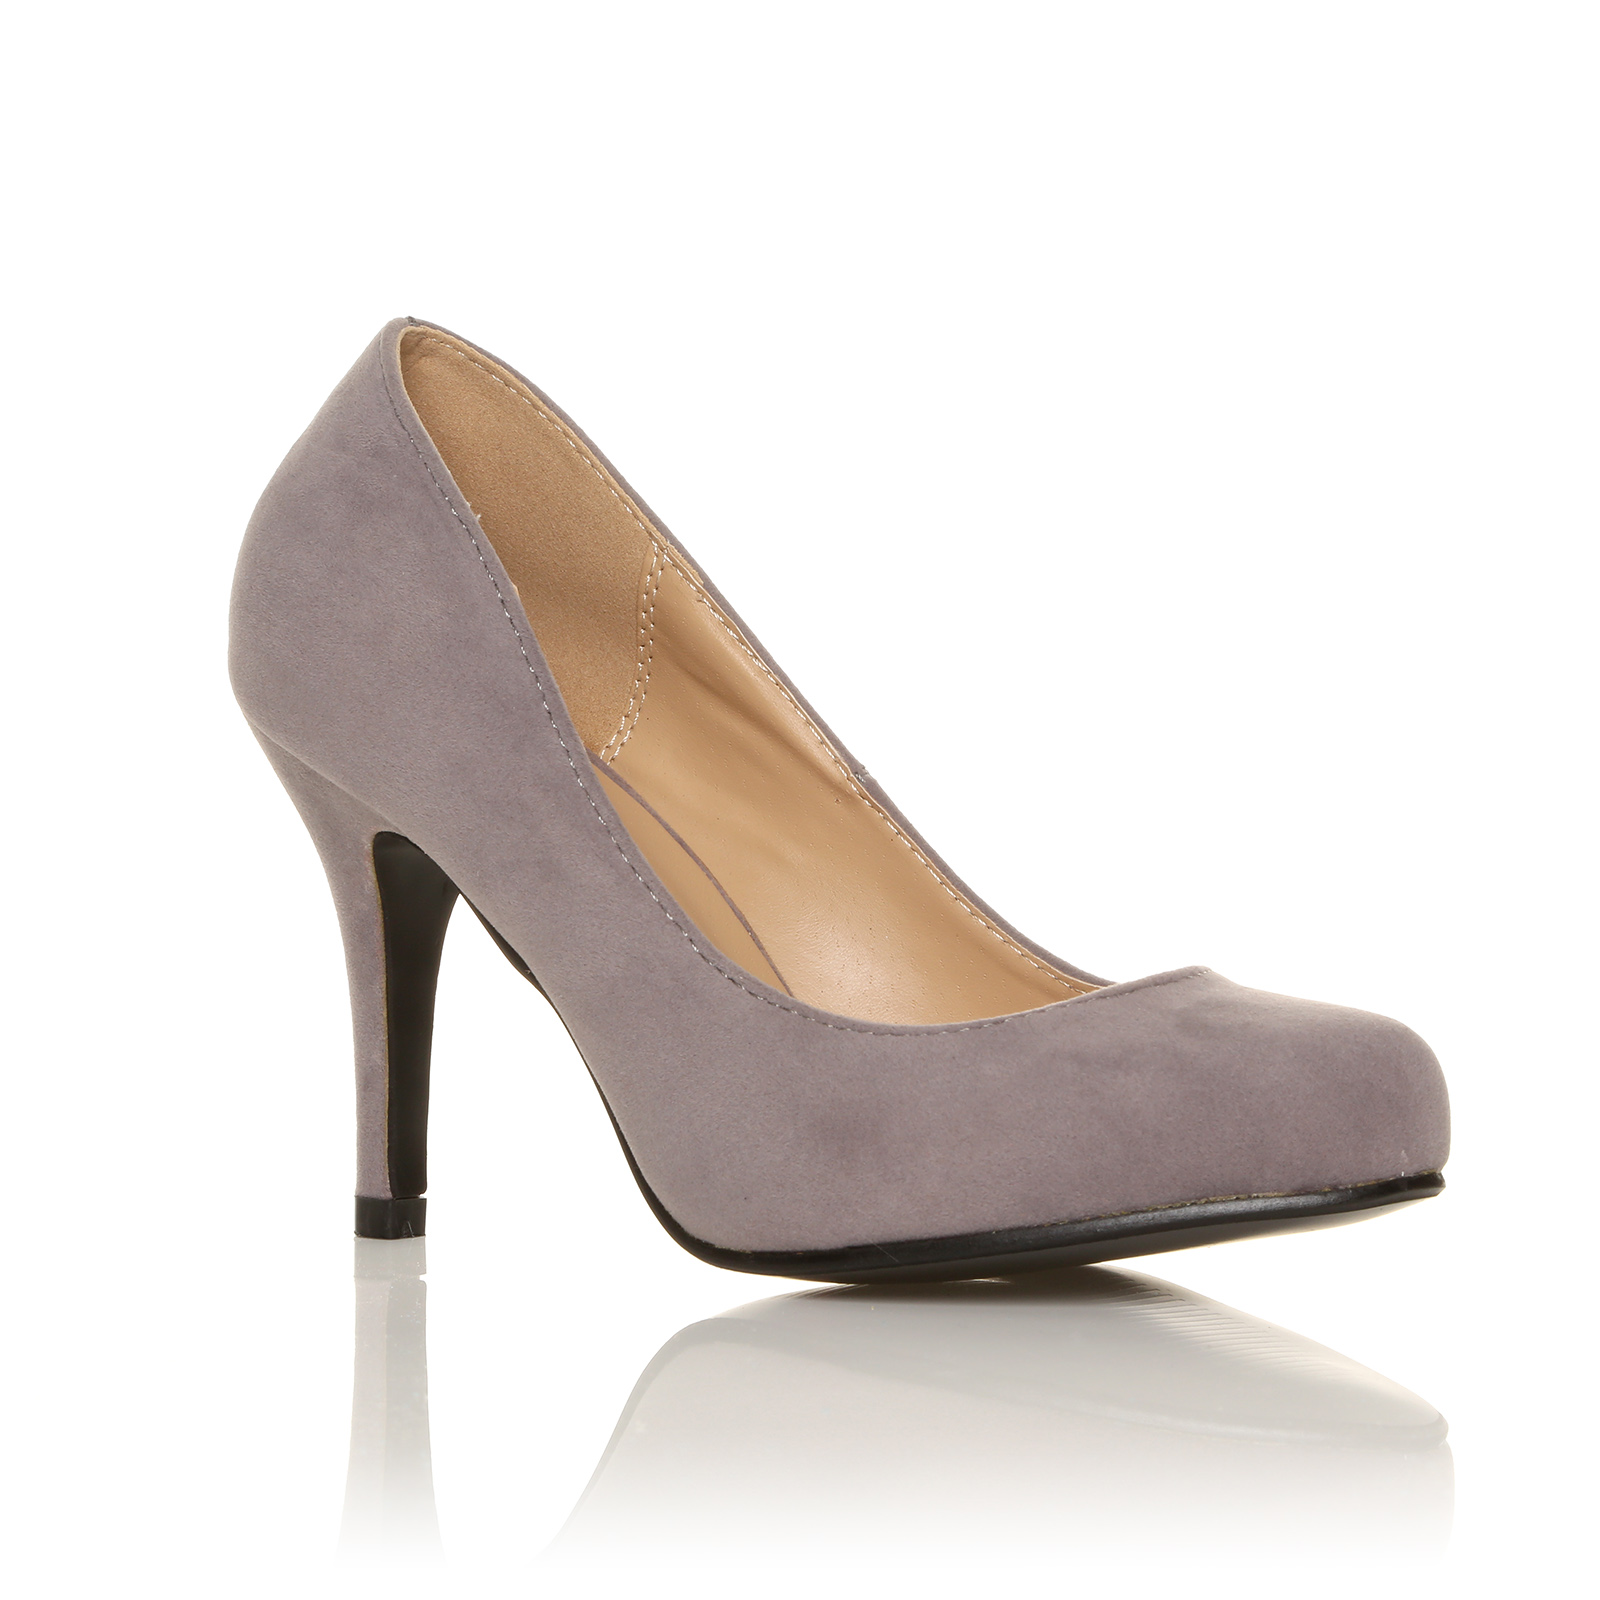 Ladies' Court Shoes at Littlewoods Lift your look with ladies' court shoes from our range. Choose from kitten, mid-height and high-heel styles for work, weekend .